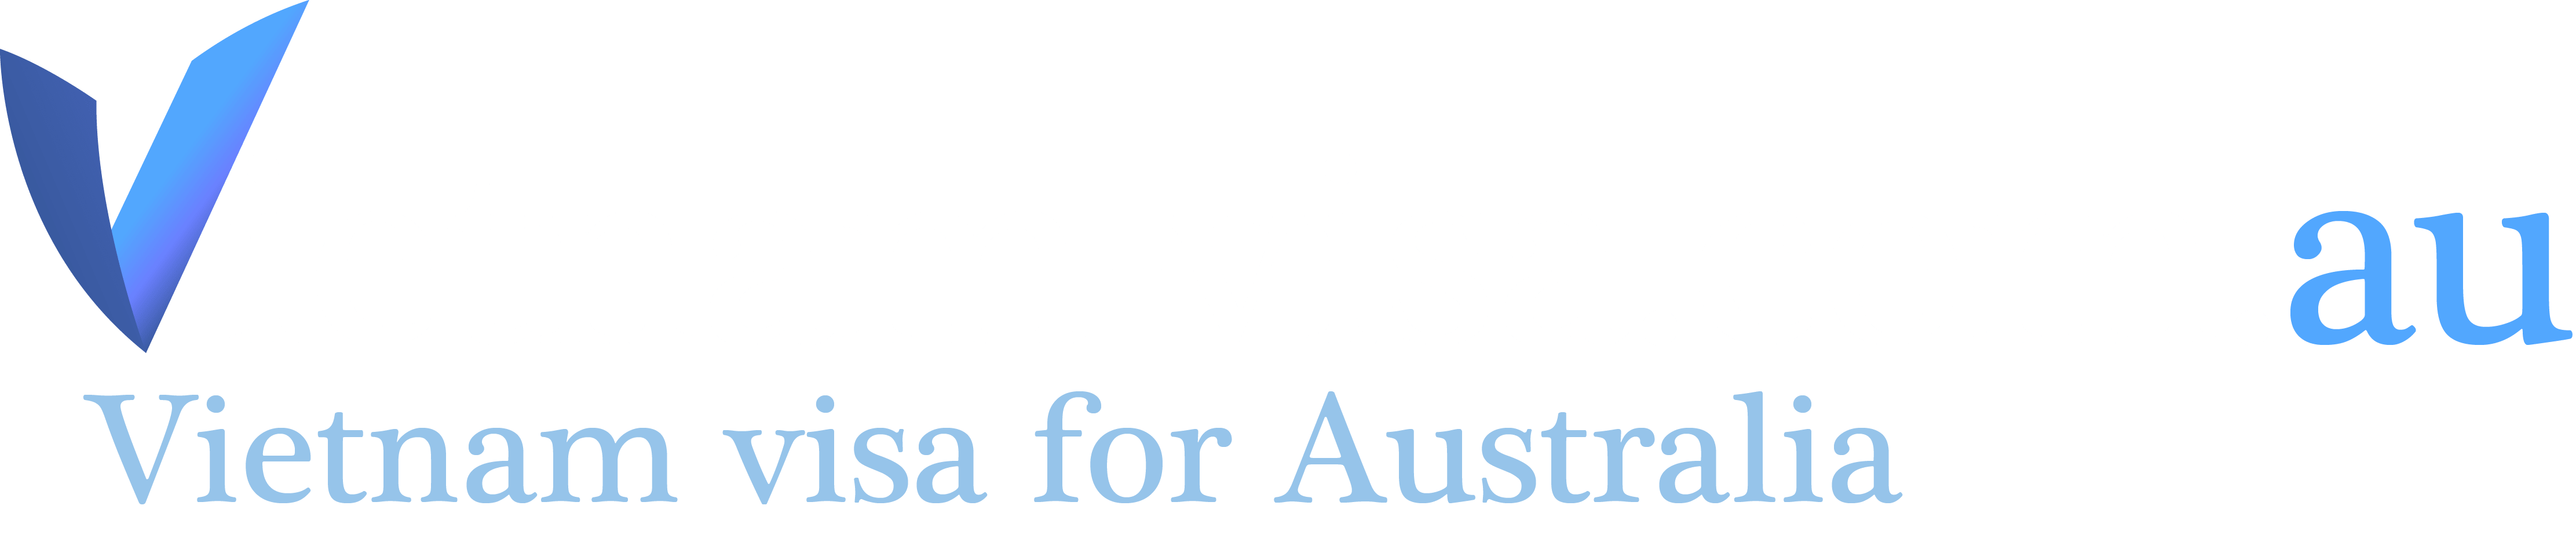 Vietnam visa for Australia